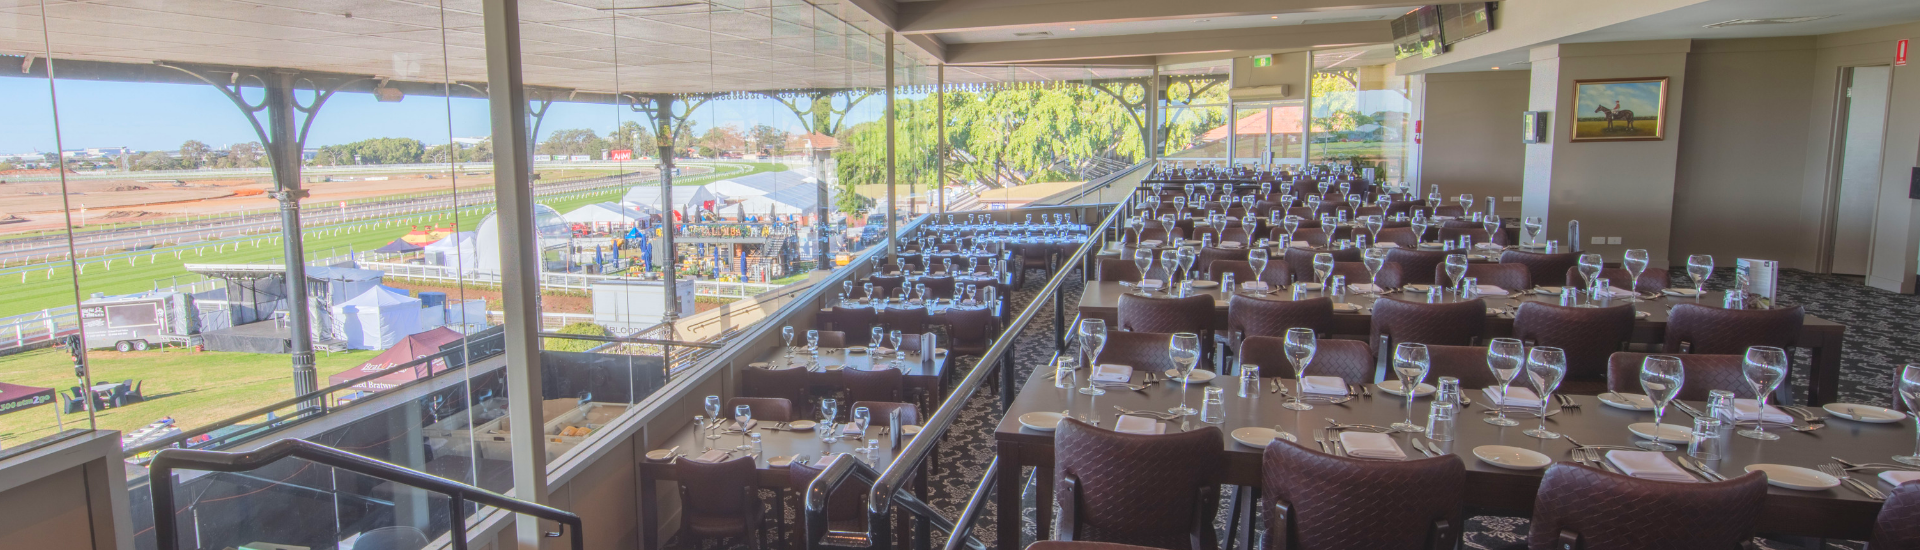 Moreton Dining Room at Eagle Farm Racecourse | Brisbane Racing Club